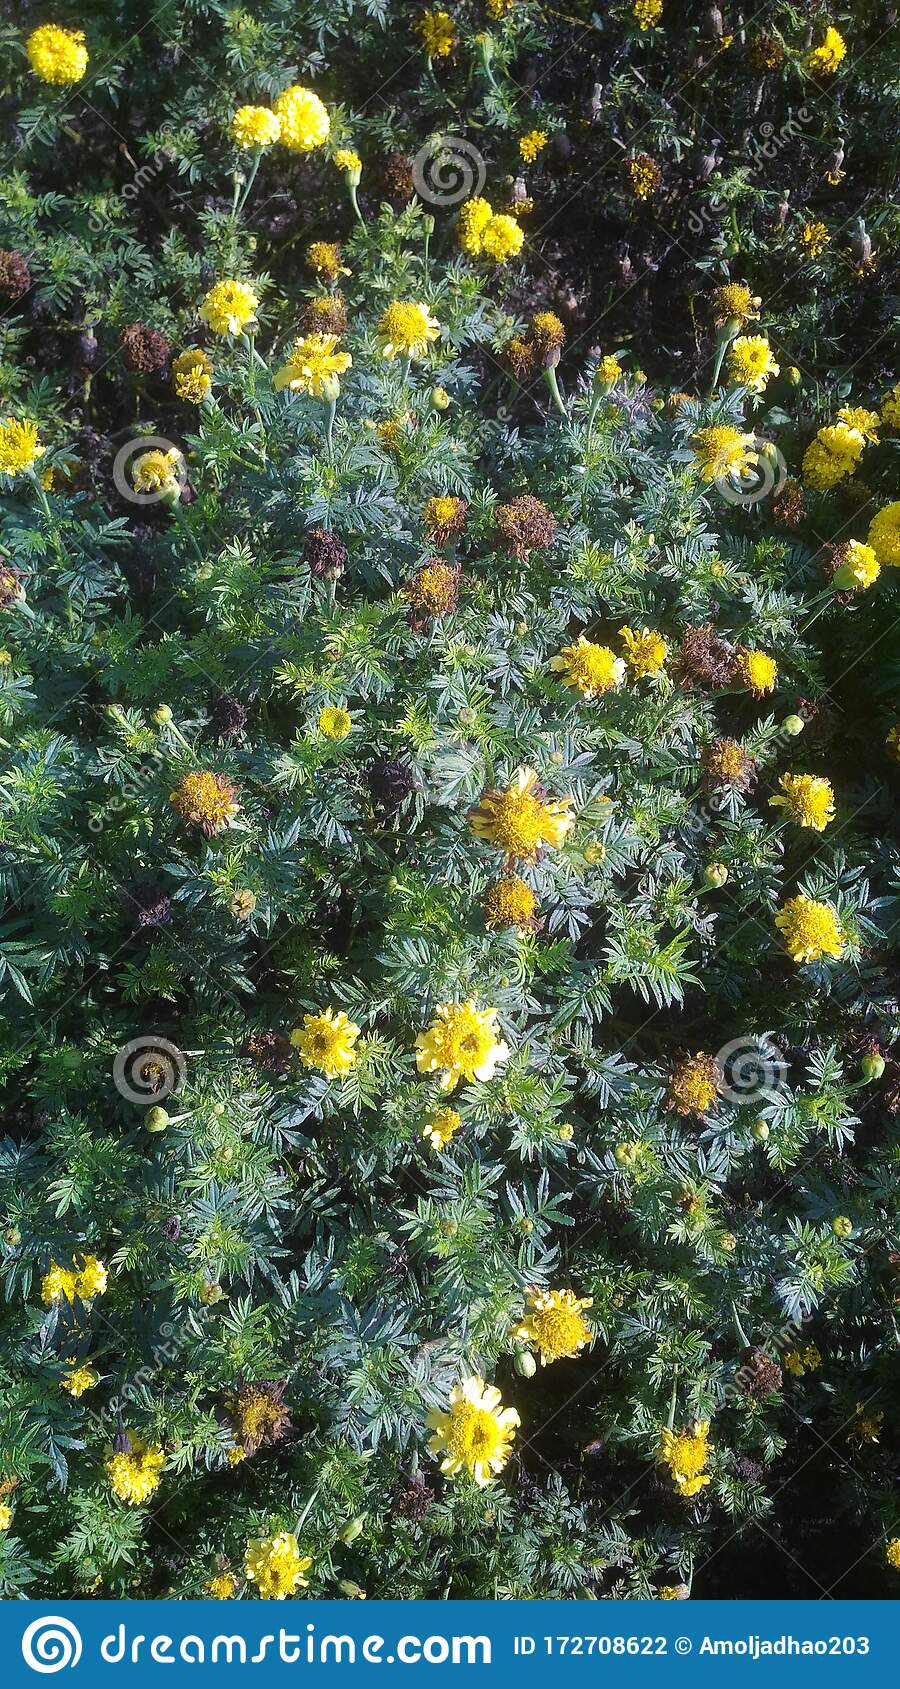 Zendu Is A Yellow Flowers And Very Sented Flowers And Diwali Festival Is A Very Important This Flowers Stock Photo Image Of Farm Father 172708622